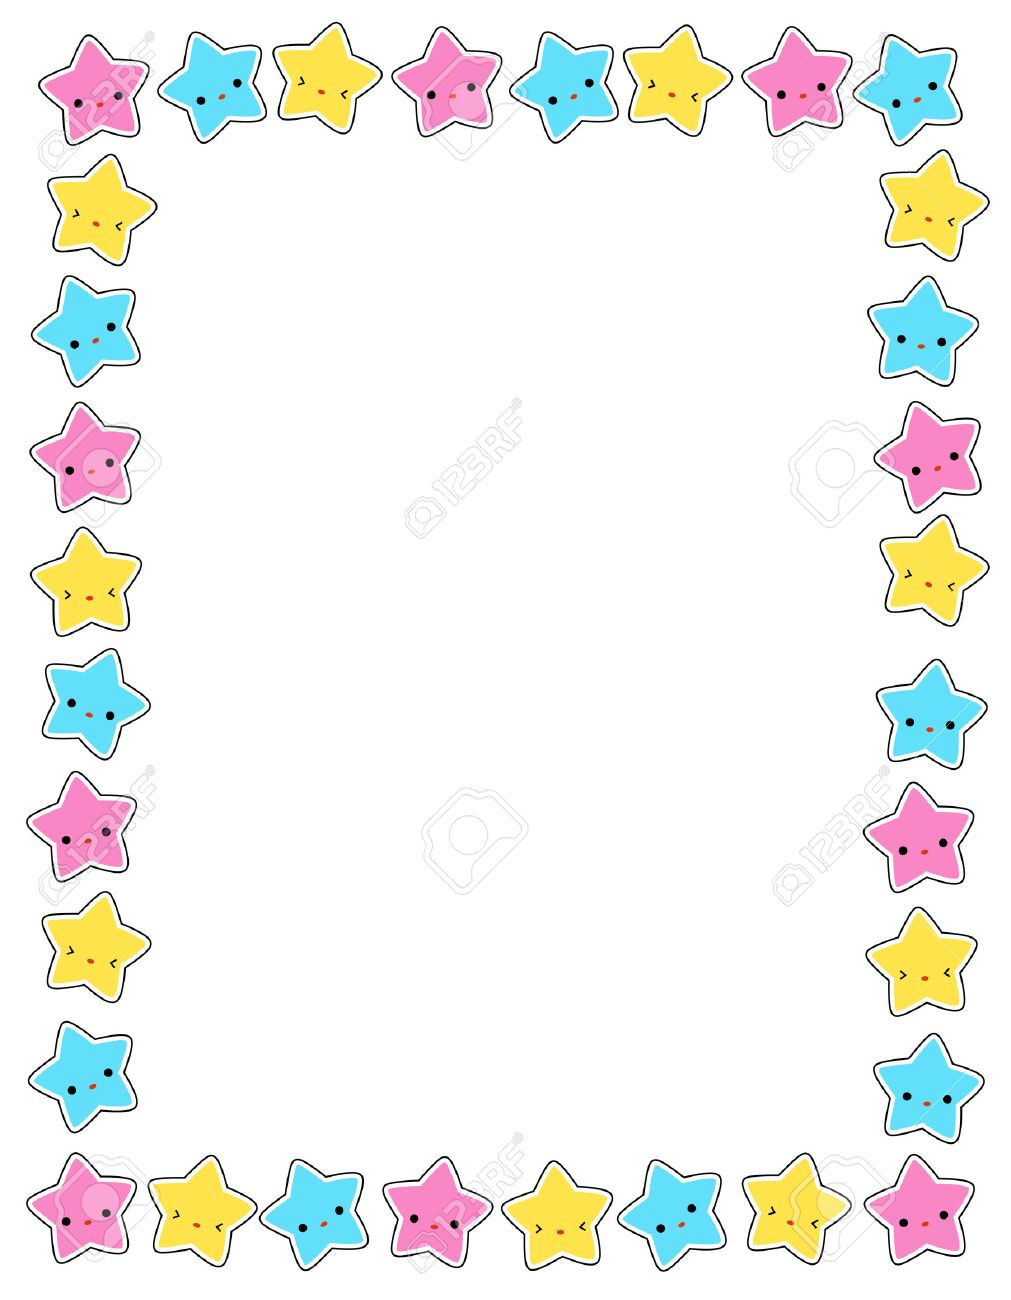 Cute colorful stars border frame for greeting cards party cute colorful stars border frame for greeting cards party invitation backgrounds etc stock vector m4hsunfo